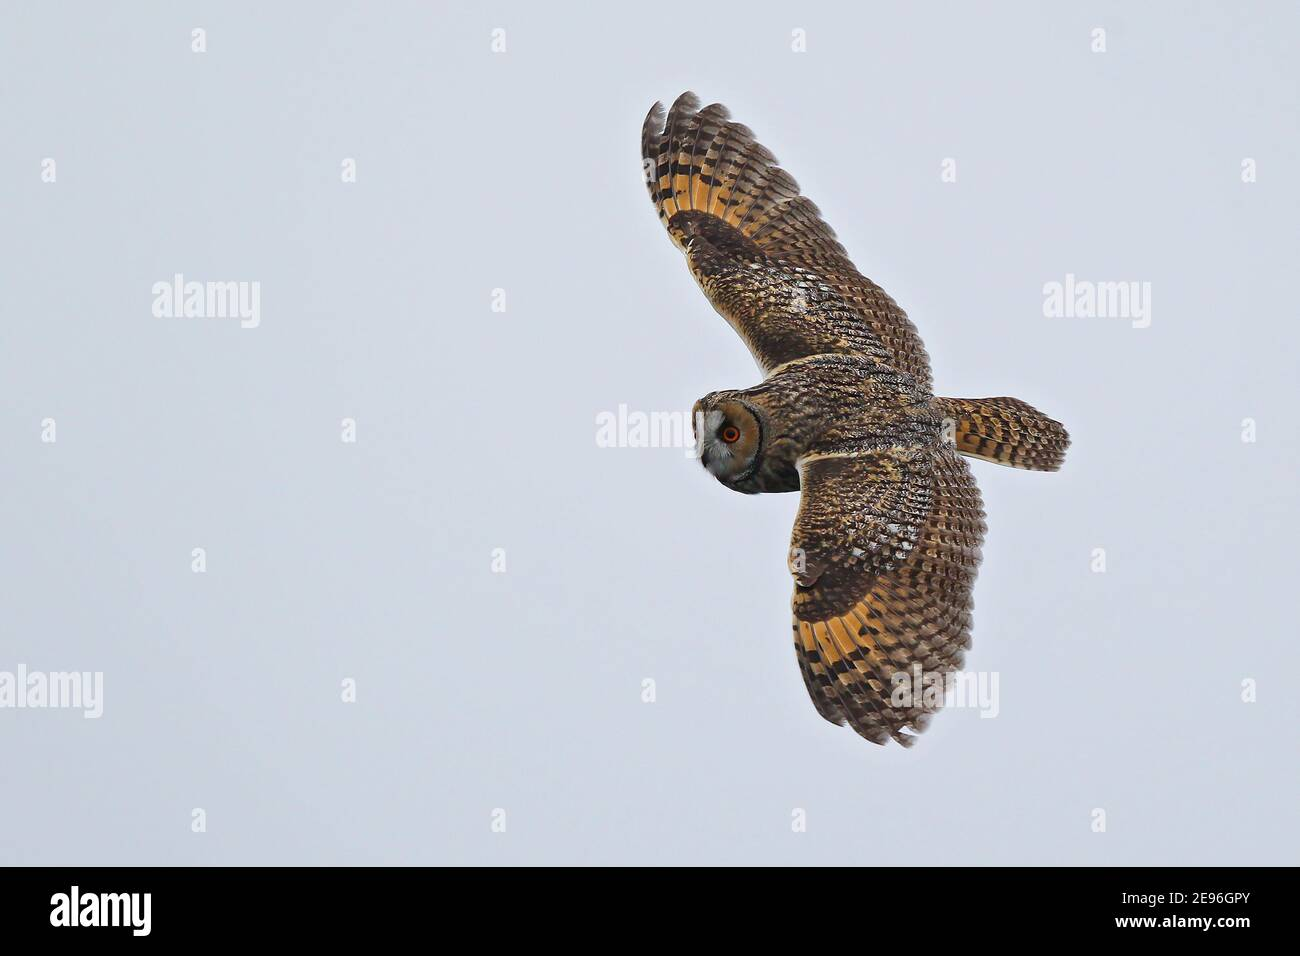 Long-eared Owl (Asio otus) flying over water, Baltic Sea, Mecklenburg-Western Pomerania, Germany Stock Photo